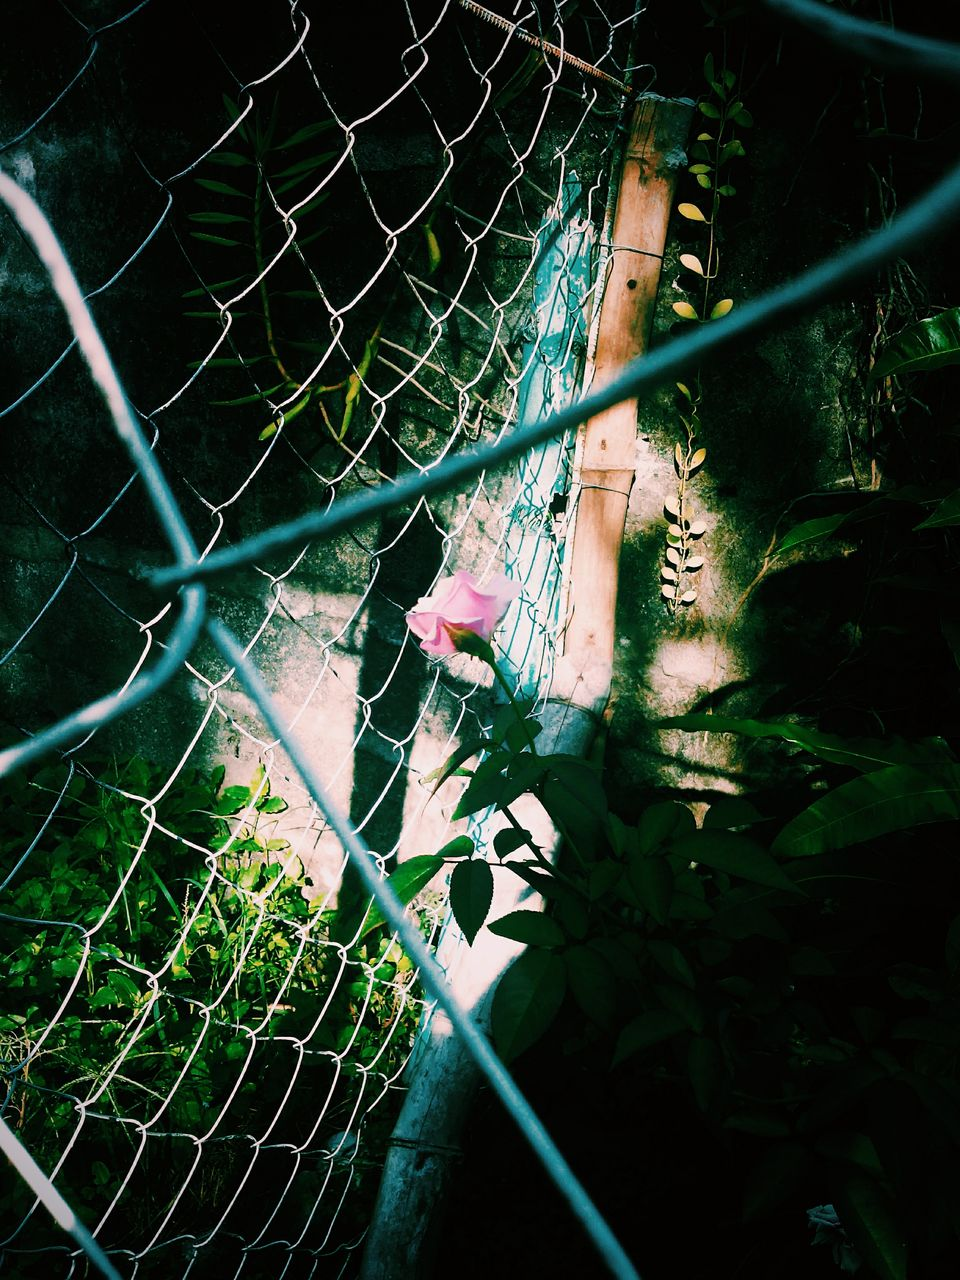 chainlink fence, metal, outdoors, protection, day, green color, one person, plant, real people, leaf, trapped, nature, animal themes, tree, close-up, people